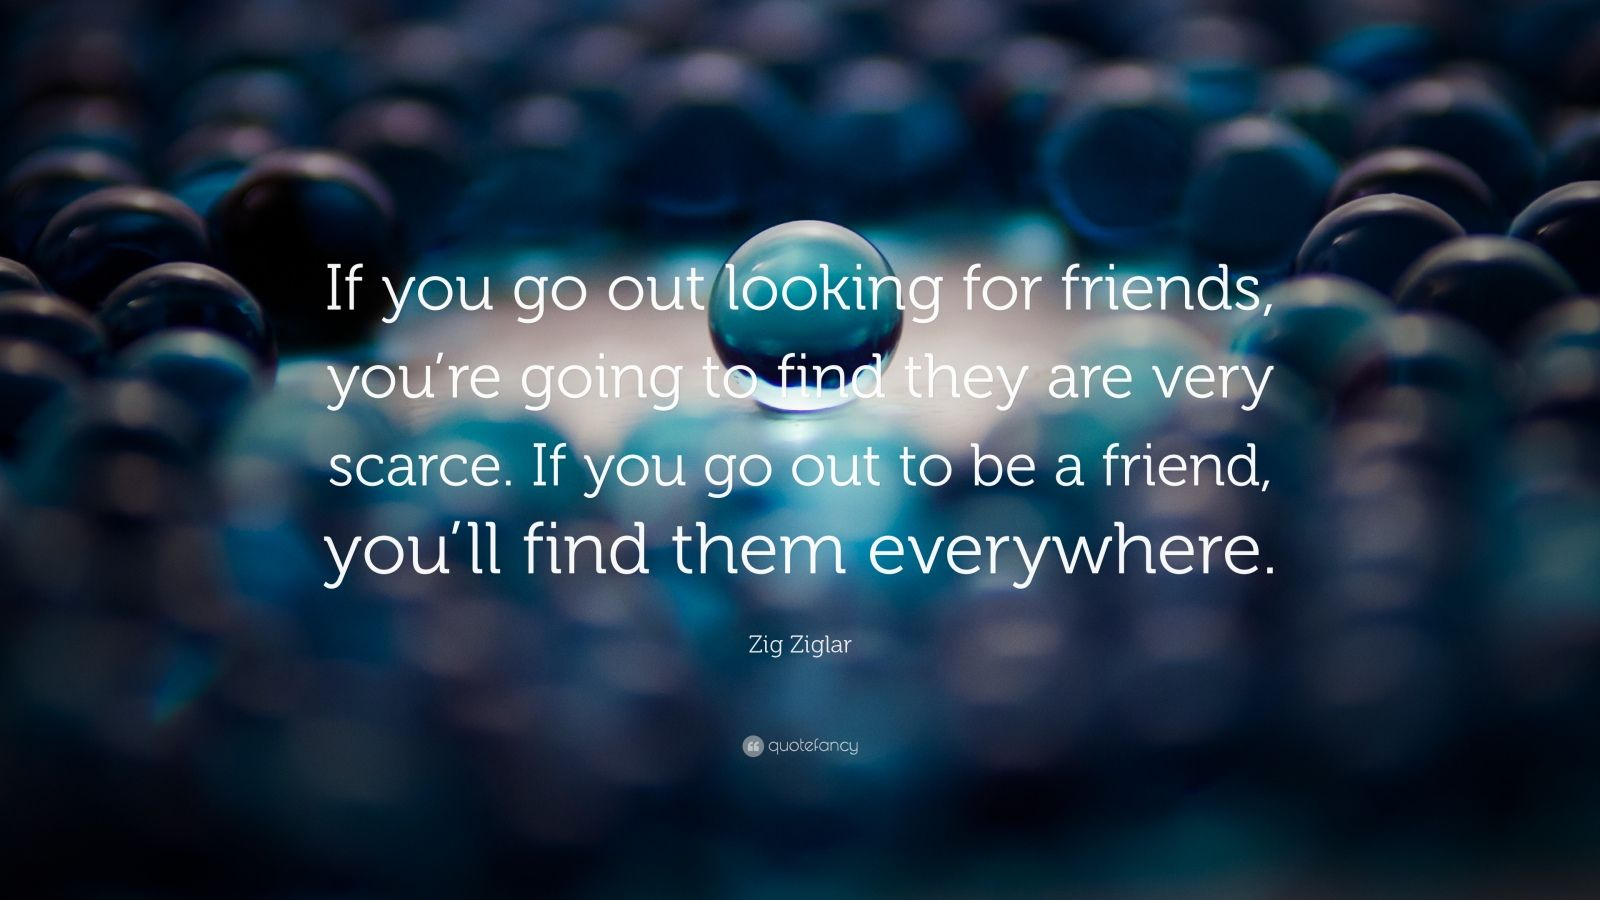 """Zig Ziglar Quote: """"If you go out looking for friends, you're going to find they are very scarce. If you go out to be a friend, you'll find them everywhere."""""""